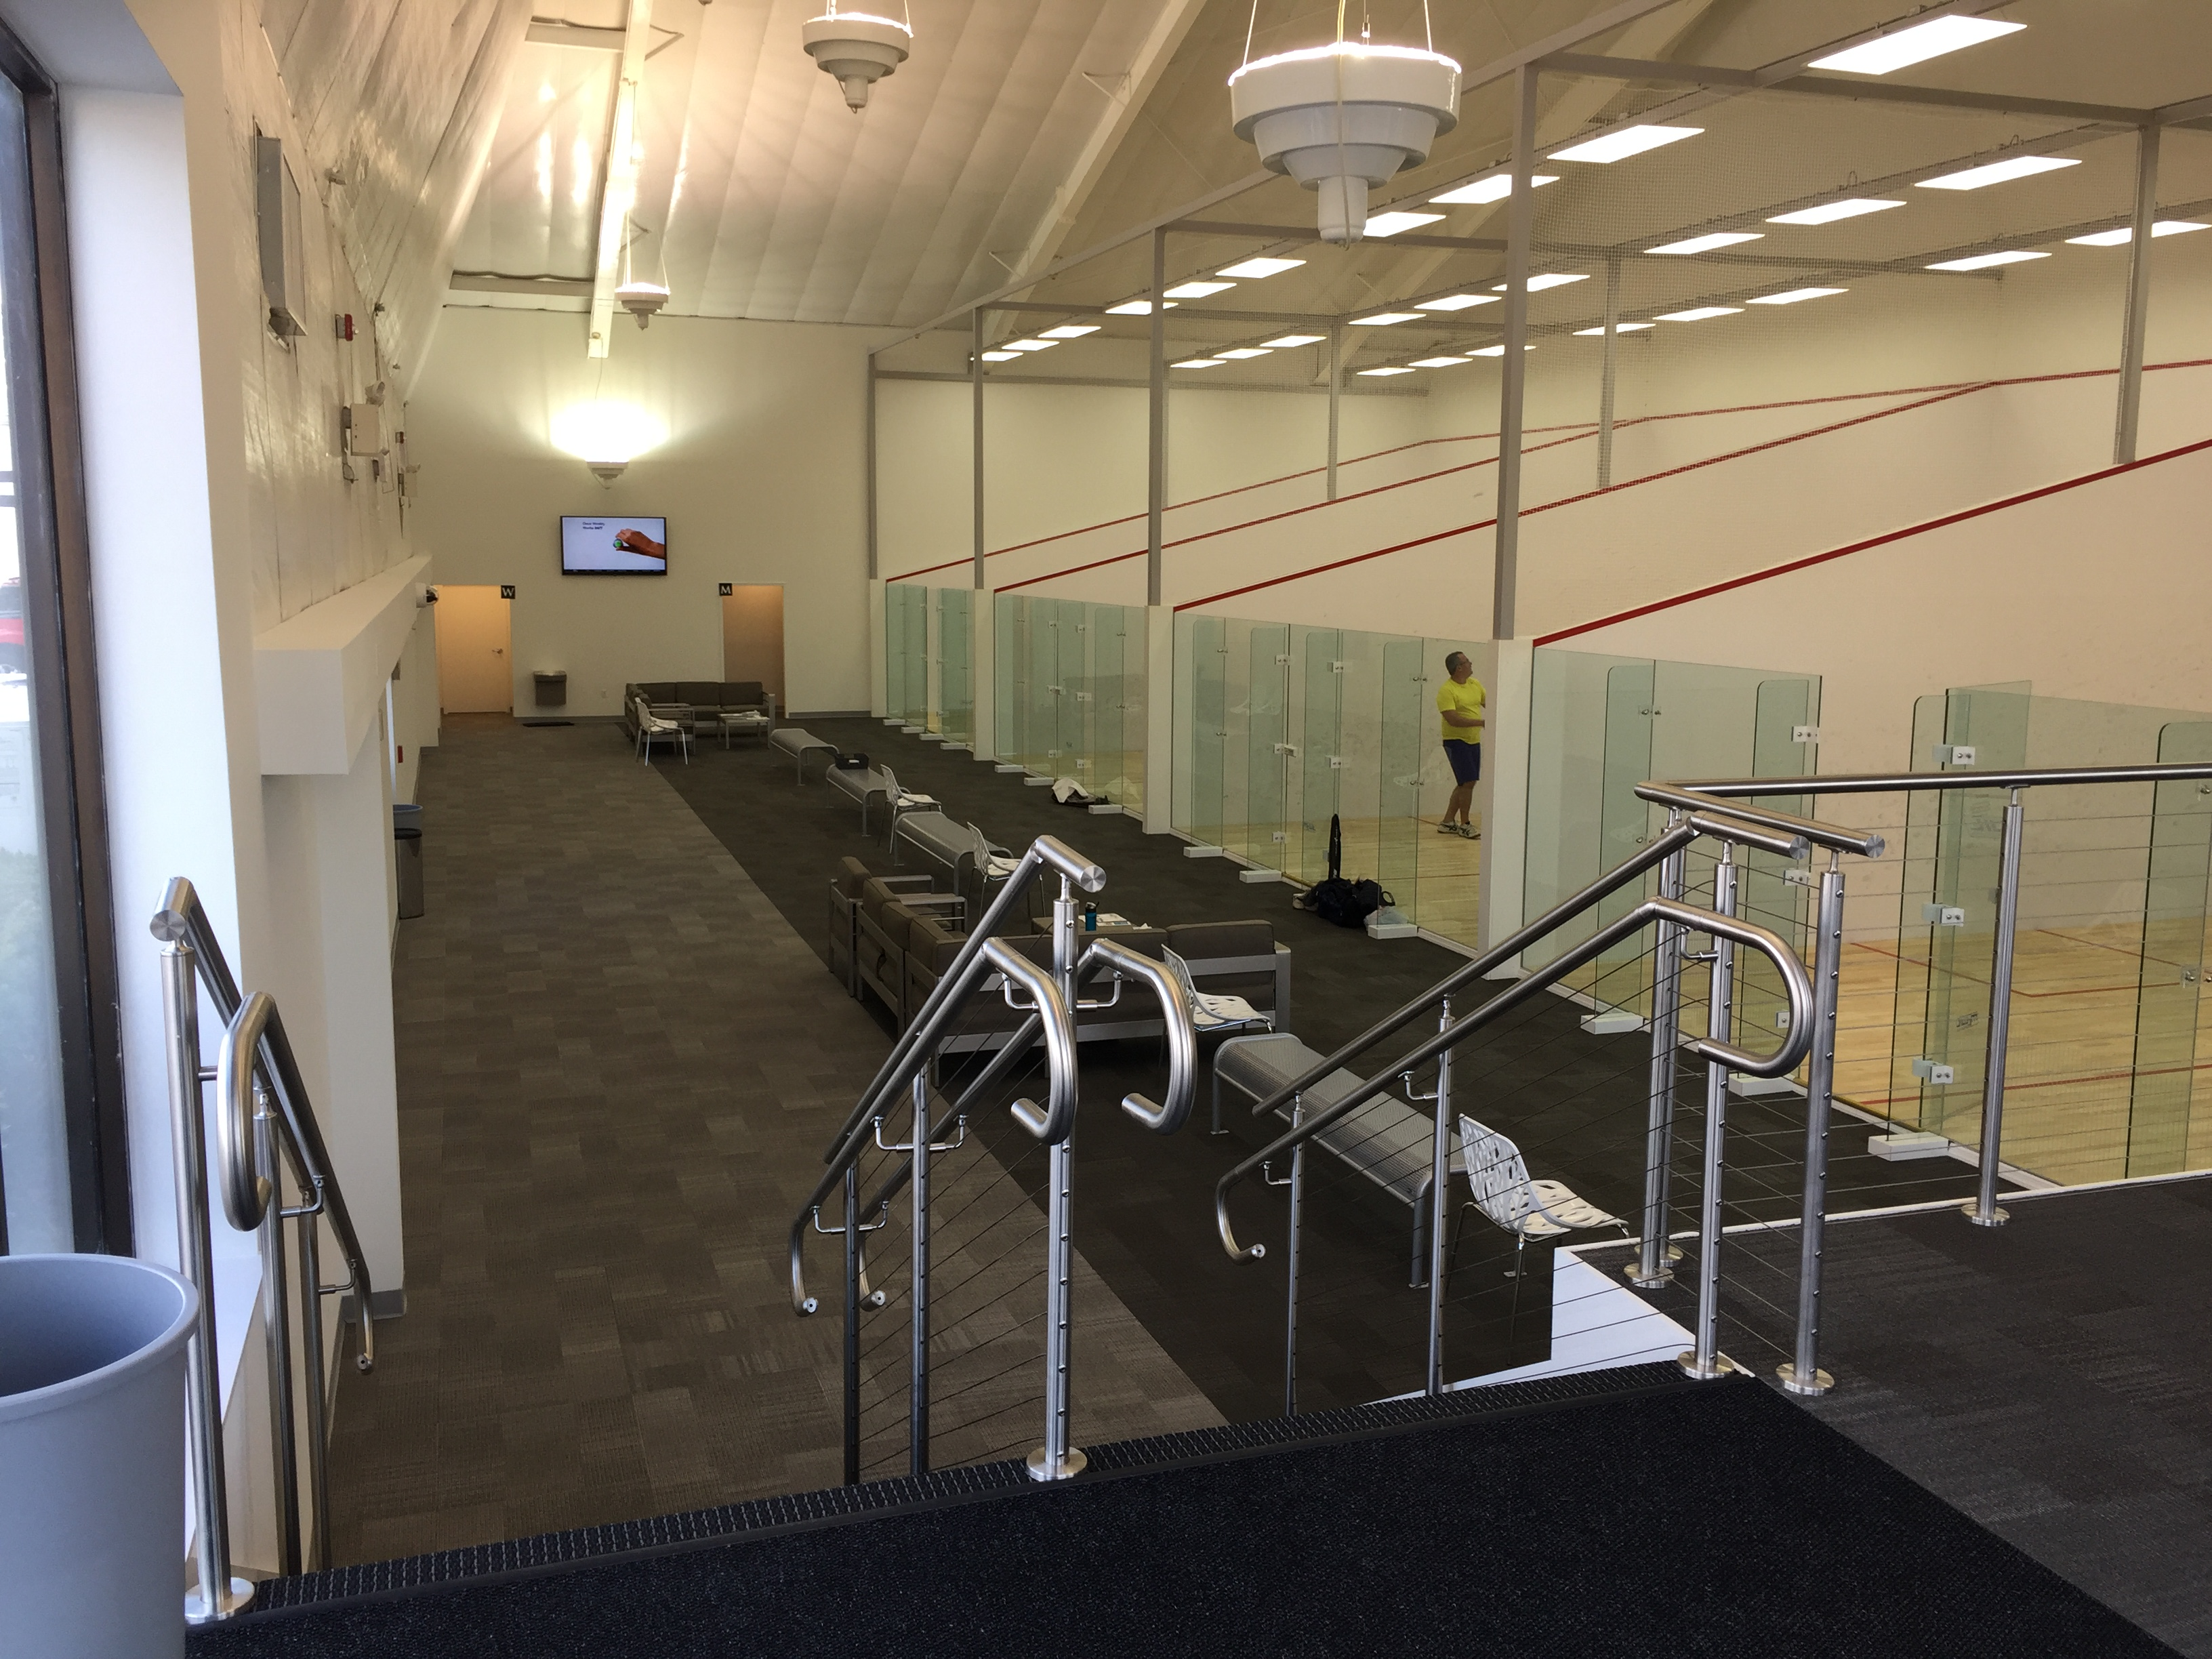 Squash club with cable guard railing